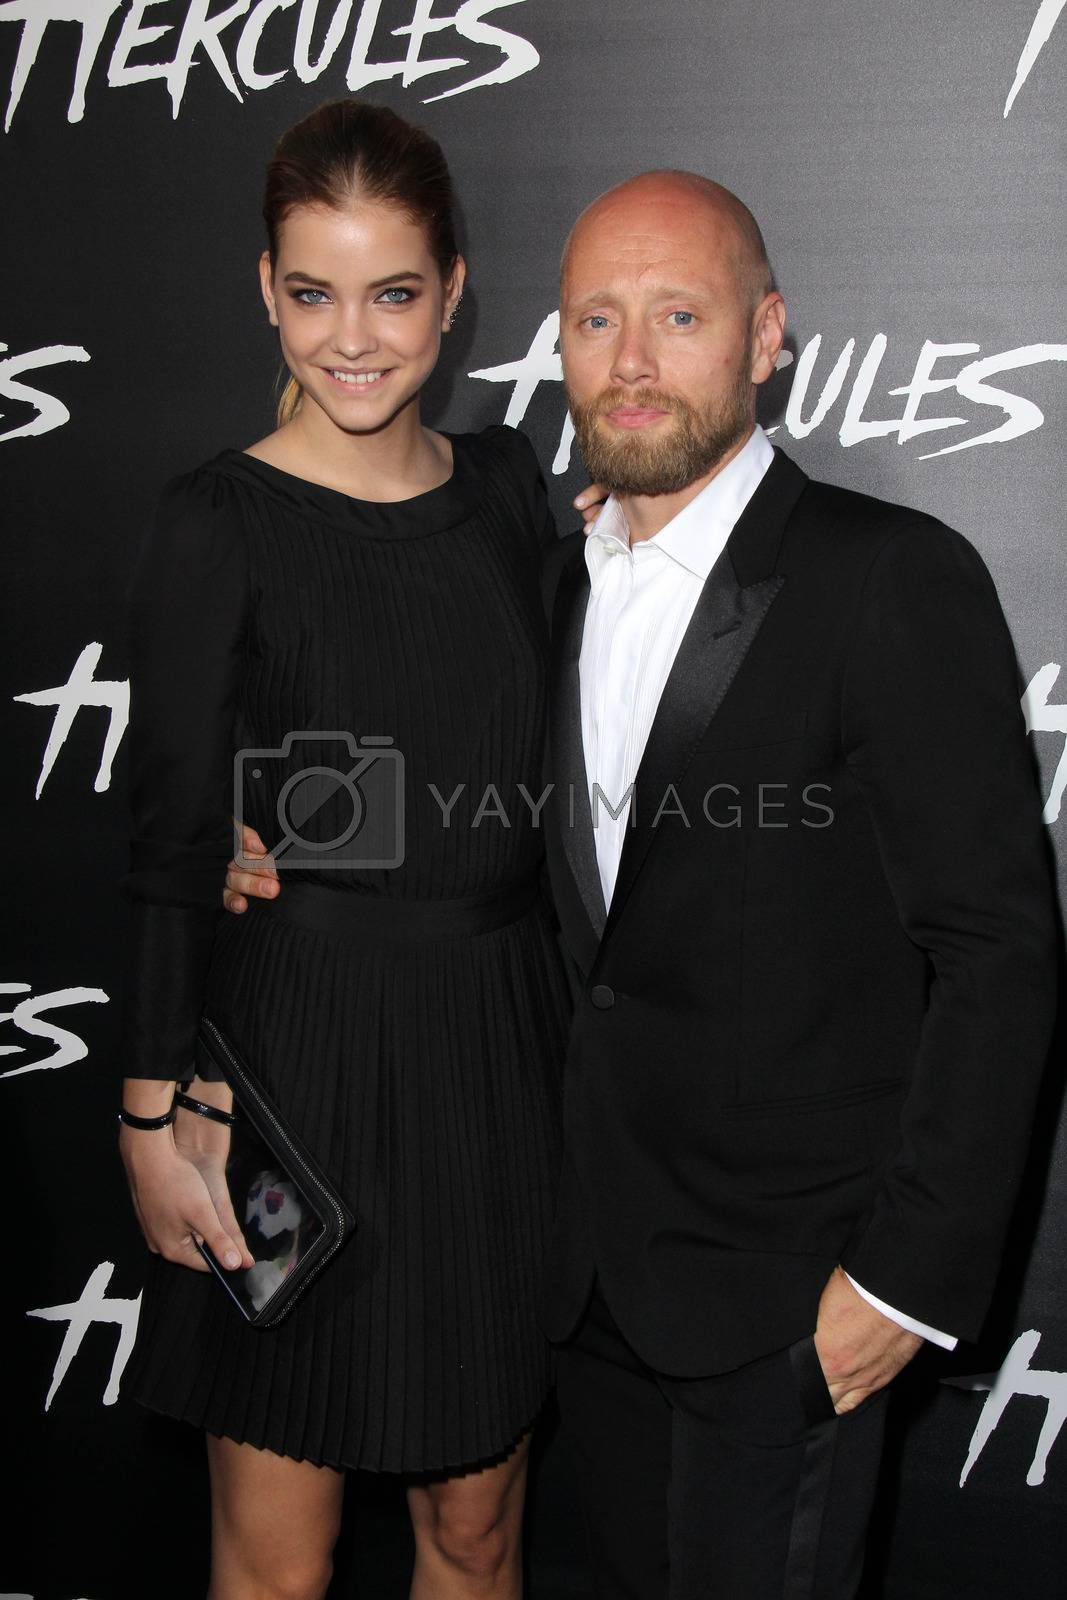 """Royalty free image of Barbara Palvin, Aksel Hennie at the """"Hercules"""" Los Angeles Premiere, TCL Chinese Theater, Hollywood, CA  07-23-14/ImageCollect by ImageCollect"""